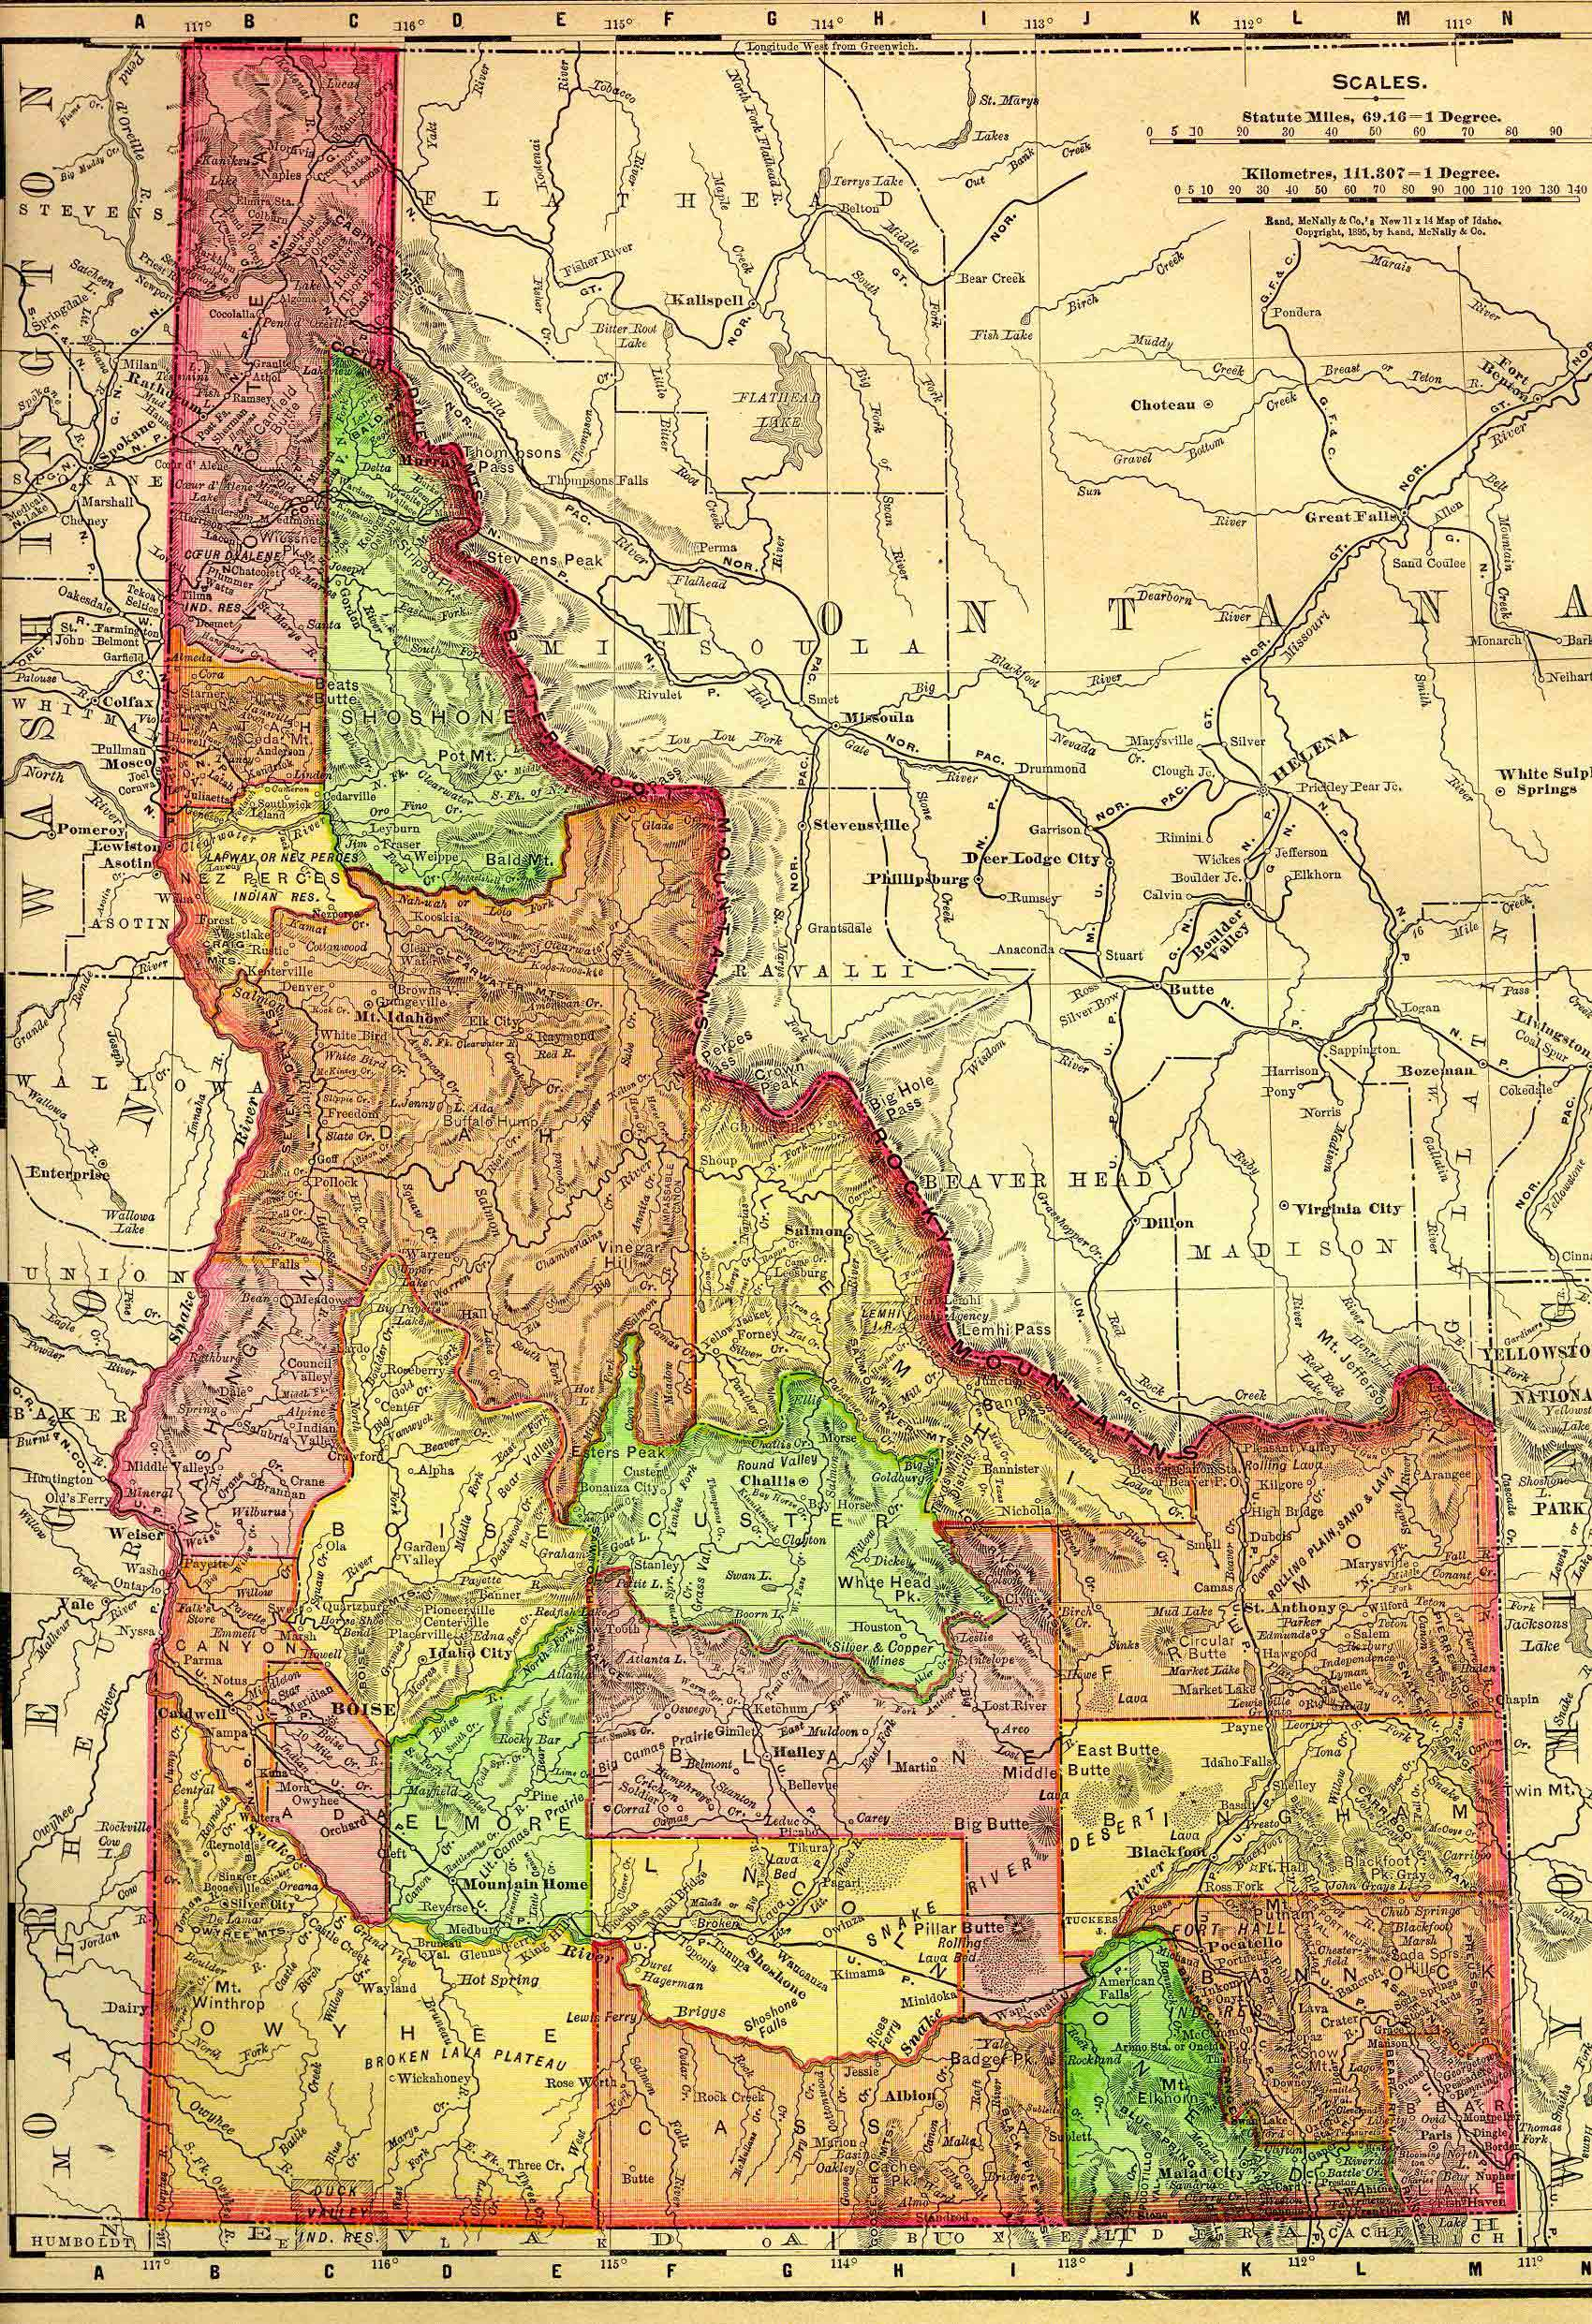 The USGenWeb Archives Digital Map Library - Idaho Maps Index.